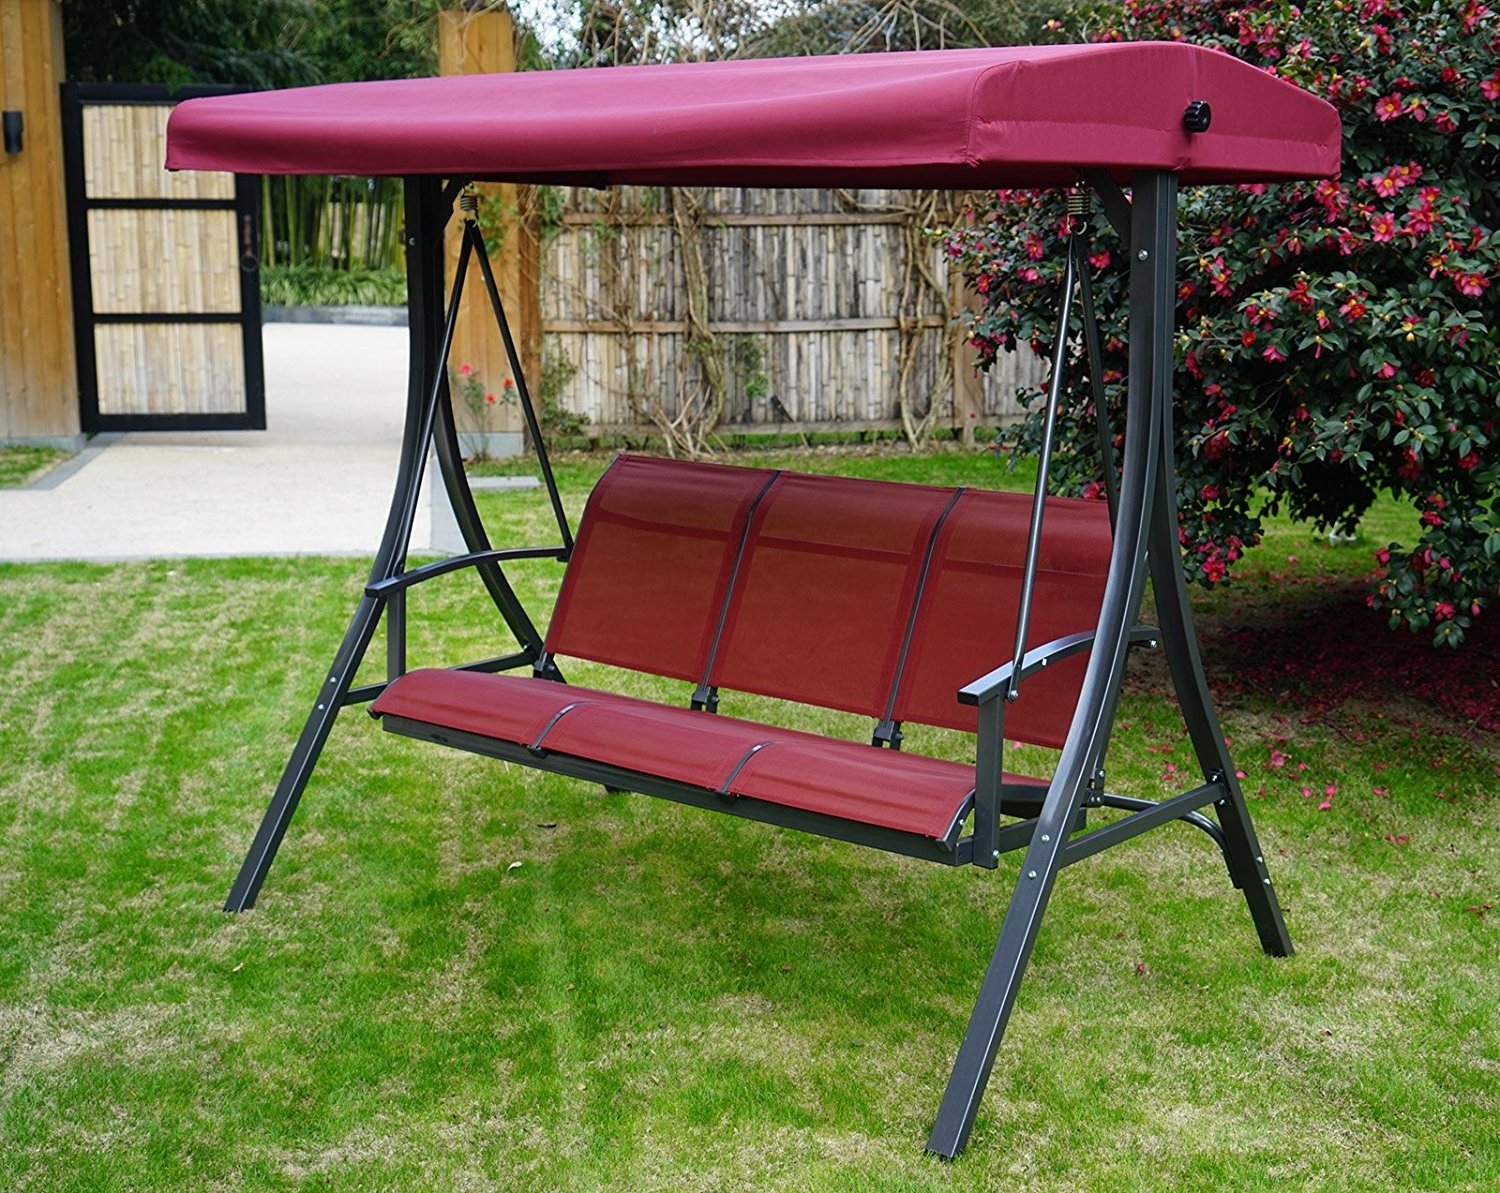 Kozyard Brenda 3 Person Outdoor Patio Swing With Strong Regarding 3 Person Red With Brown Powder Coated Frame Steel Outdoor Swings (View 11 of 25)